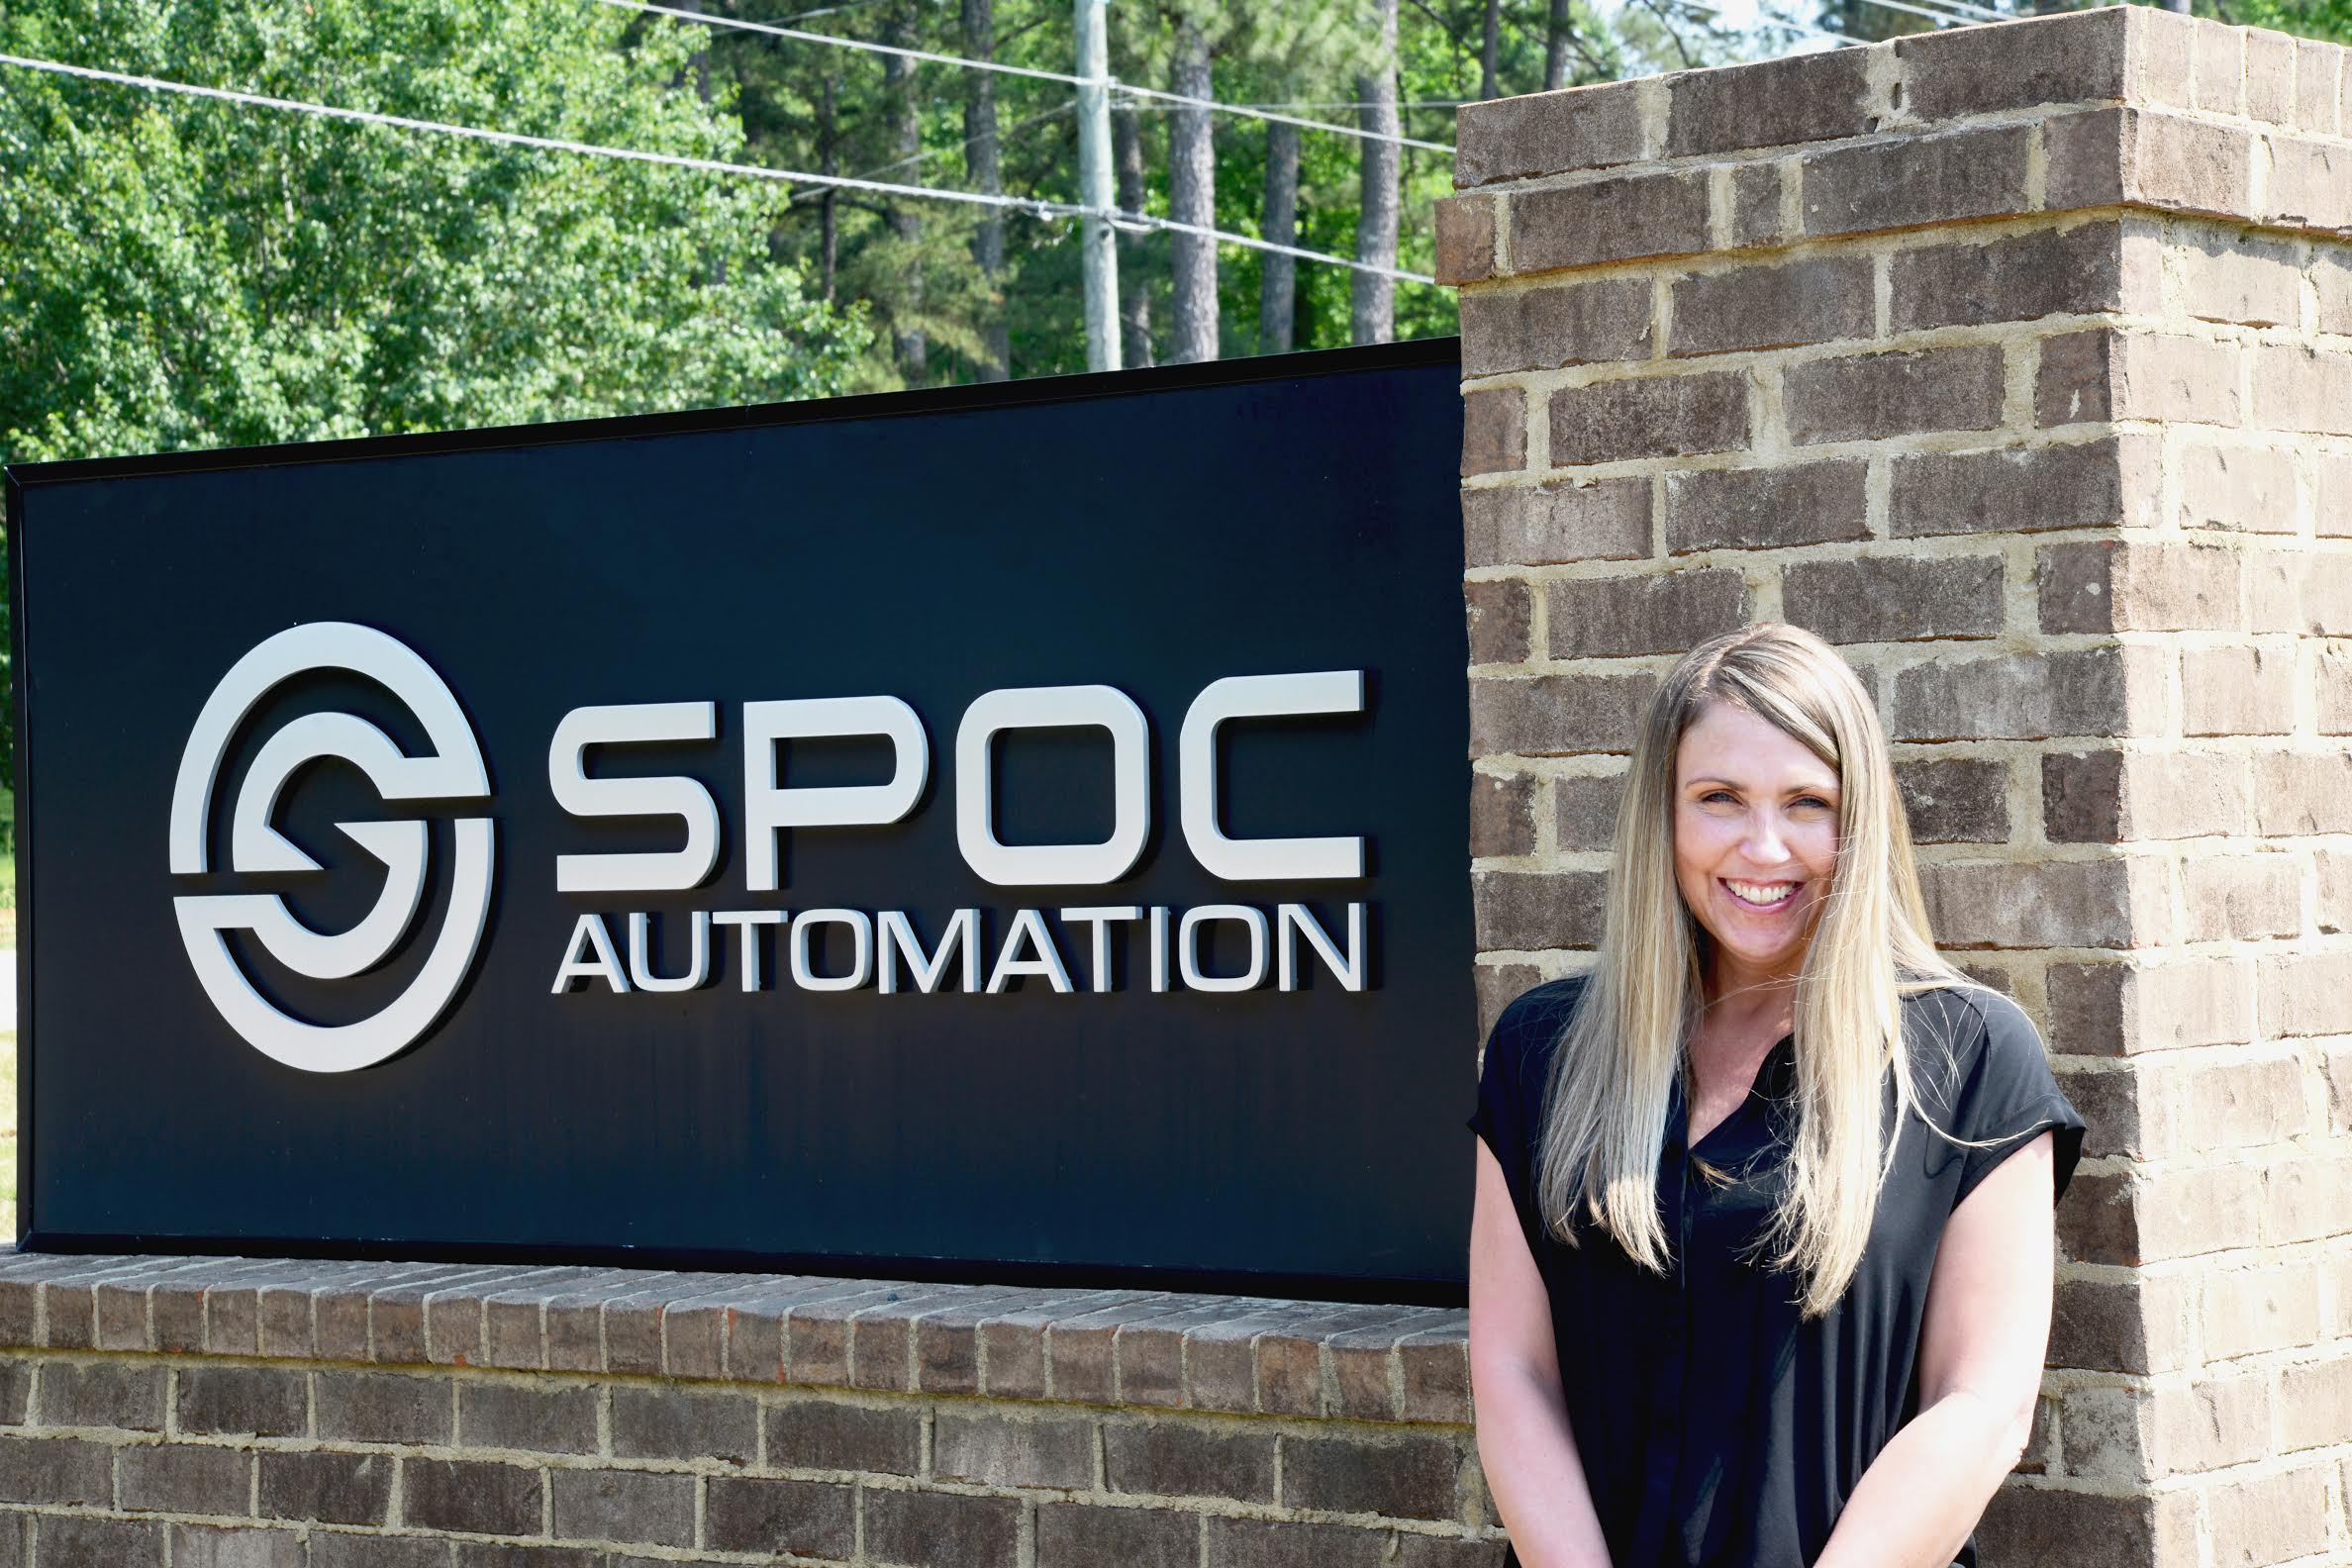 Jamie Goodgame named Human Resource and Risk Manager at SPOC Automation